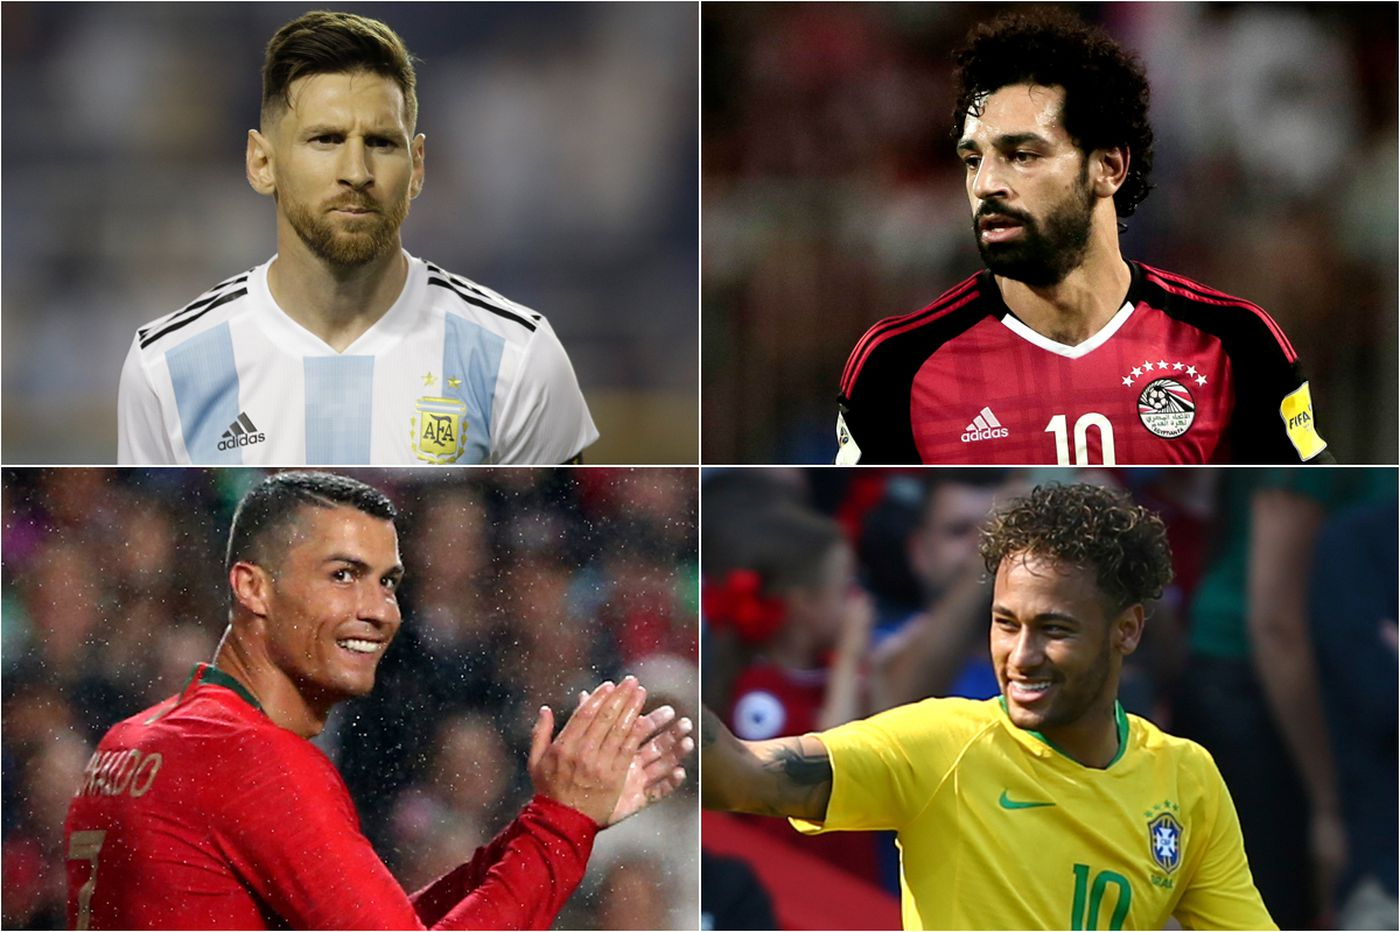 2018 World Cup: Previewing everything from Messi and Ronaldo to the best teams and matches